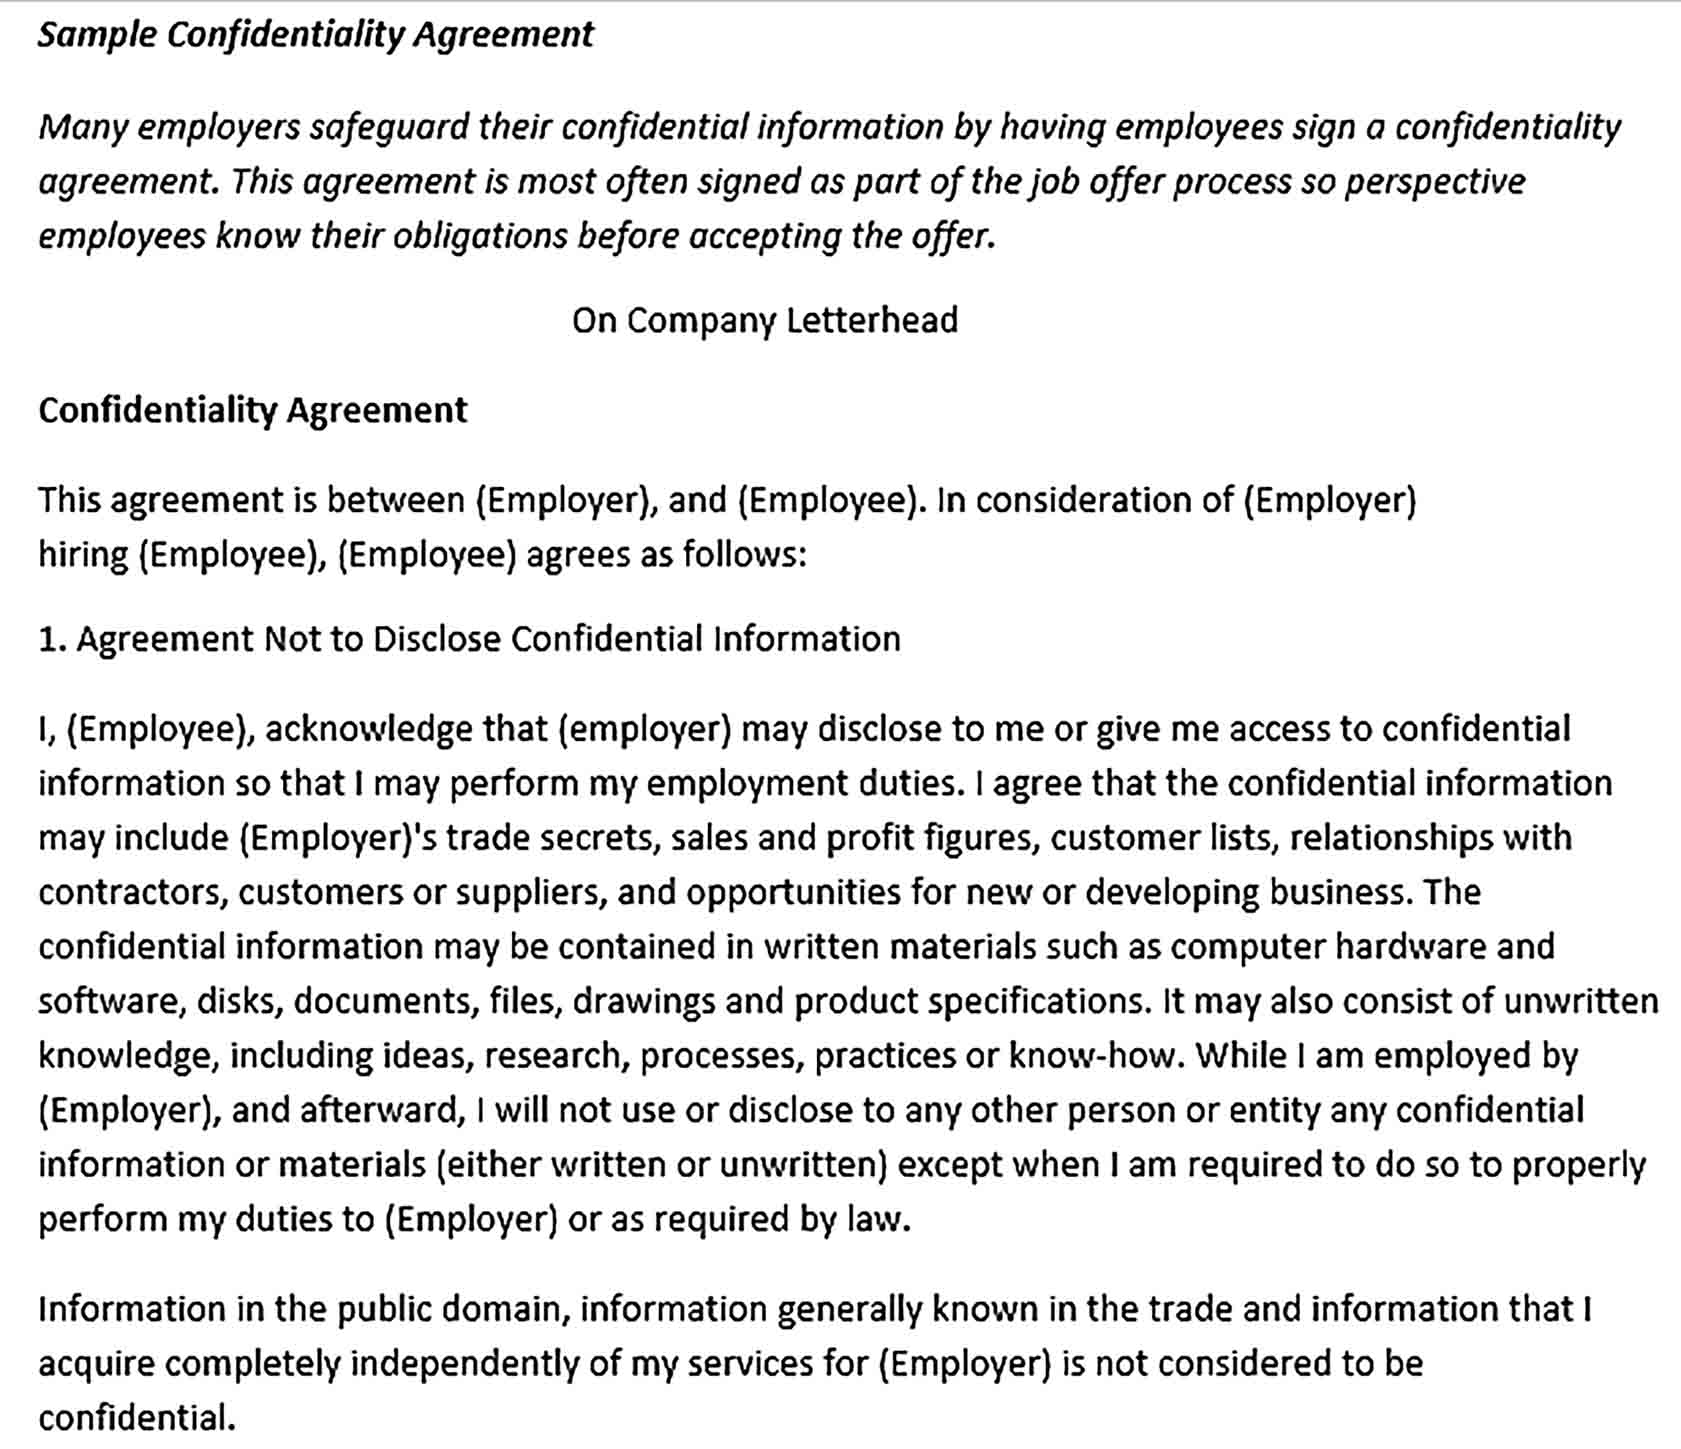 Sample Confidentiality Agreement